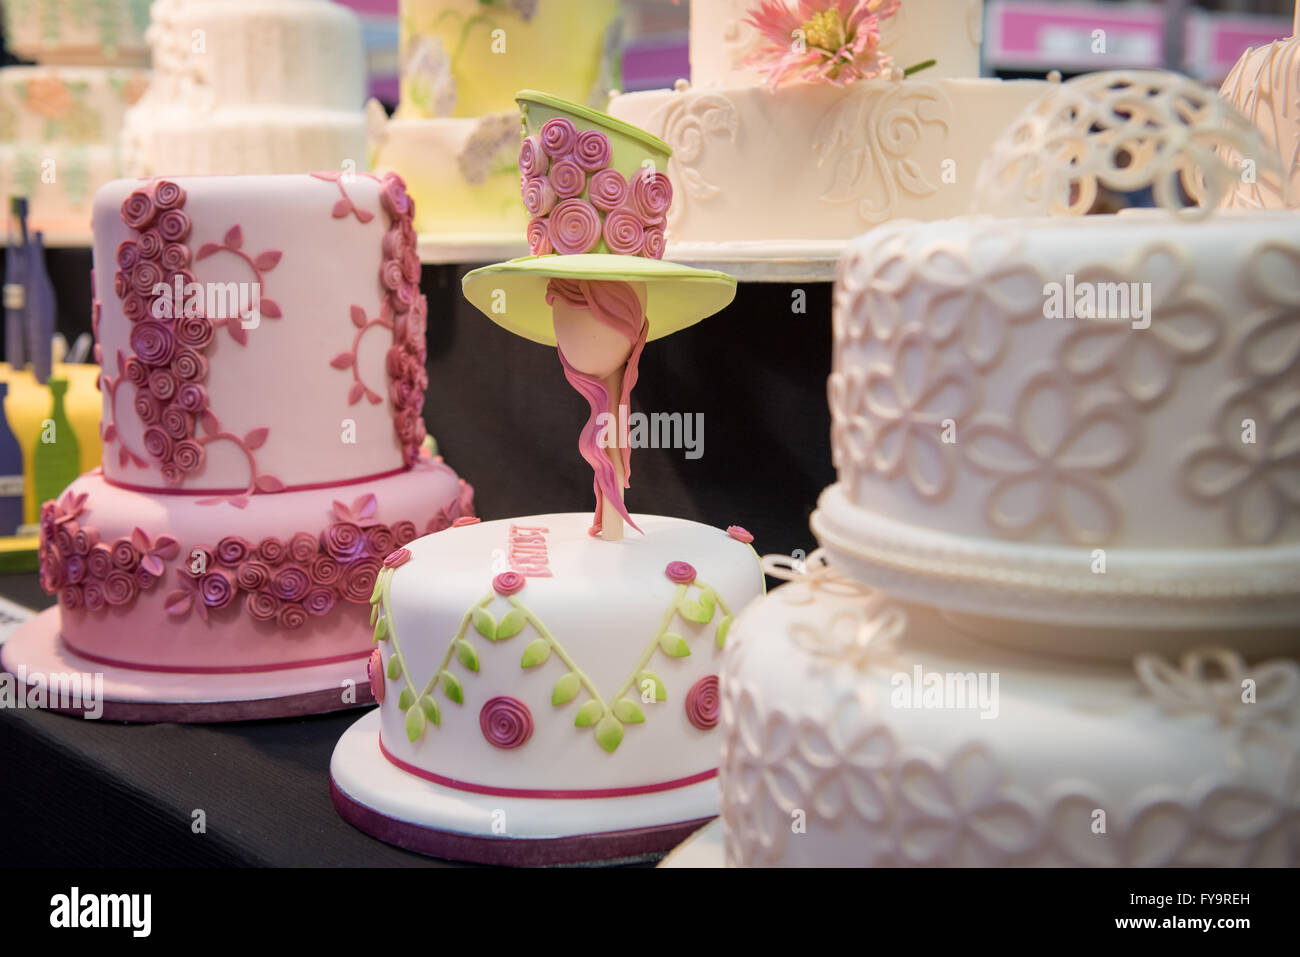 Decorative Floral Birthday And Wedding Cakes At Cake International The Sugarcraft Decorating Baking Show In London